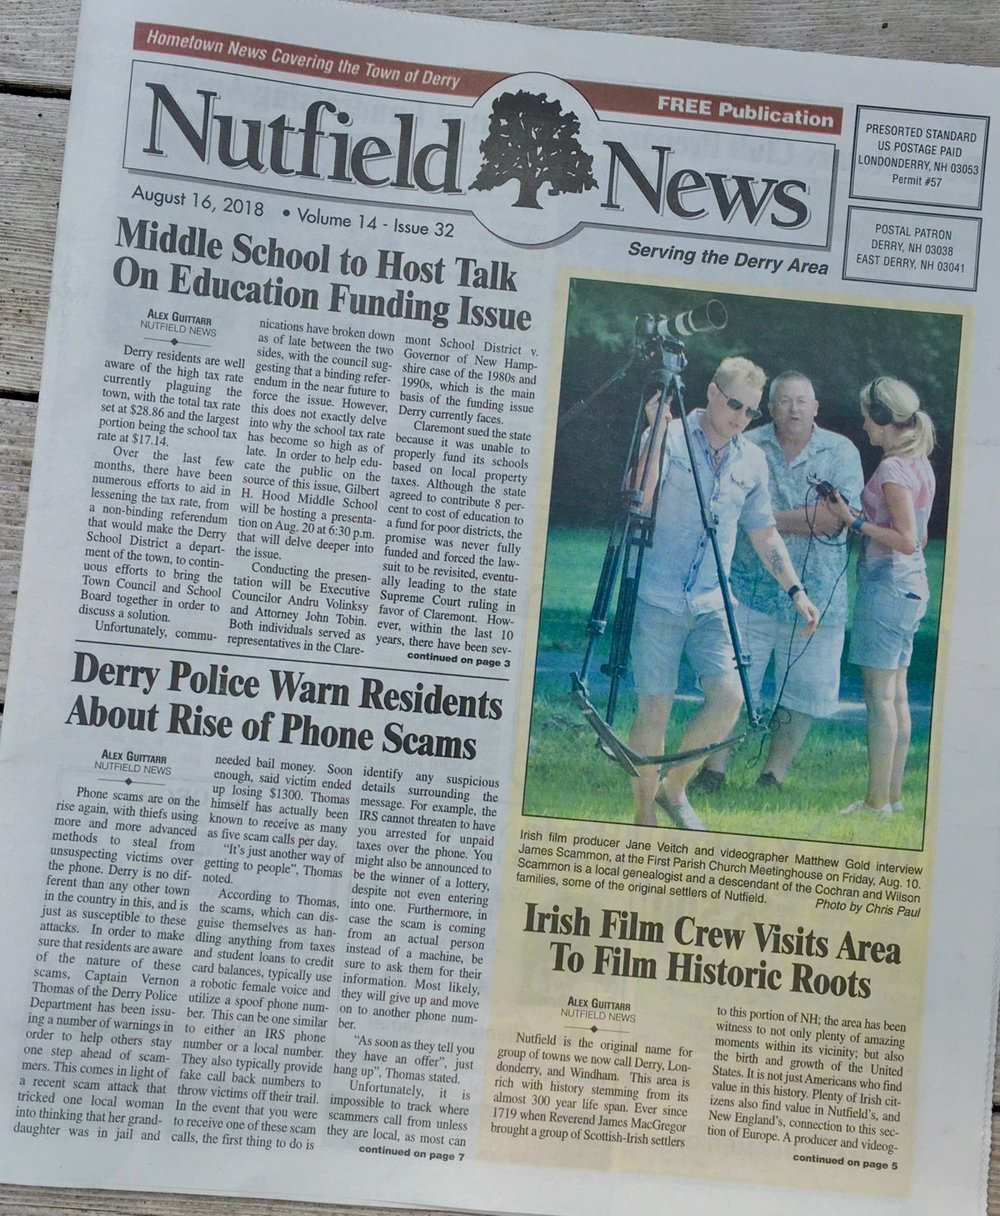 Nutfield News August 16, 2018